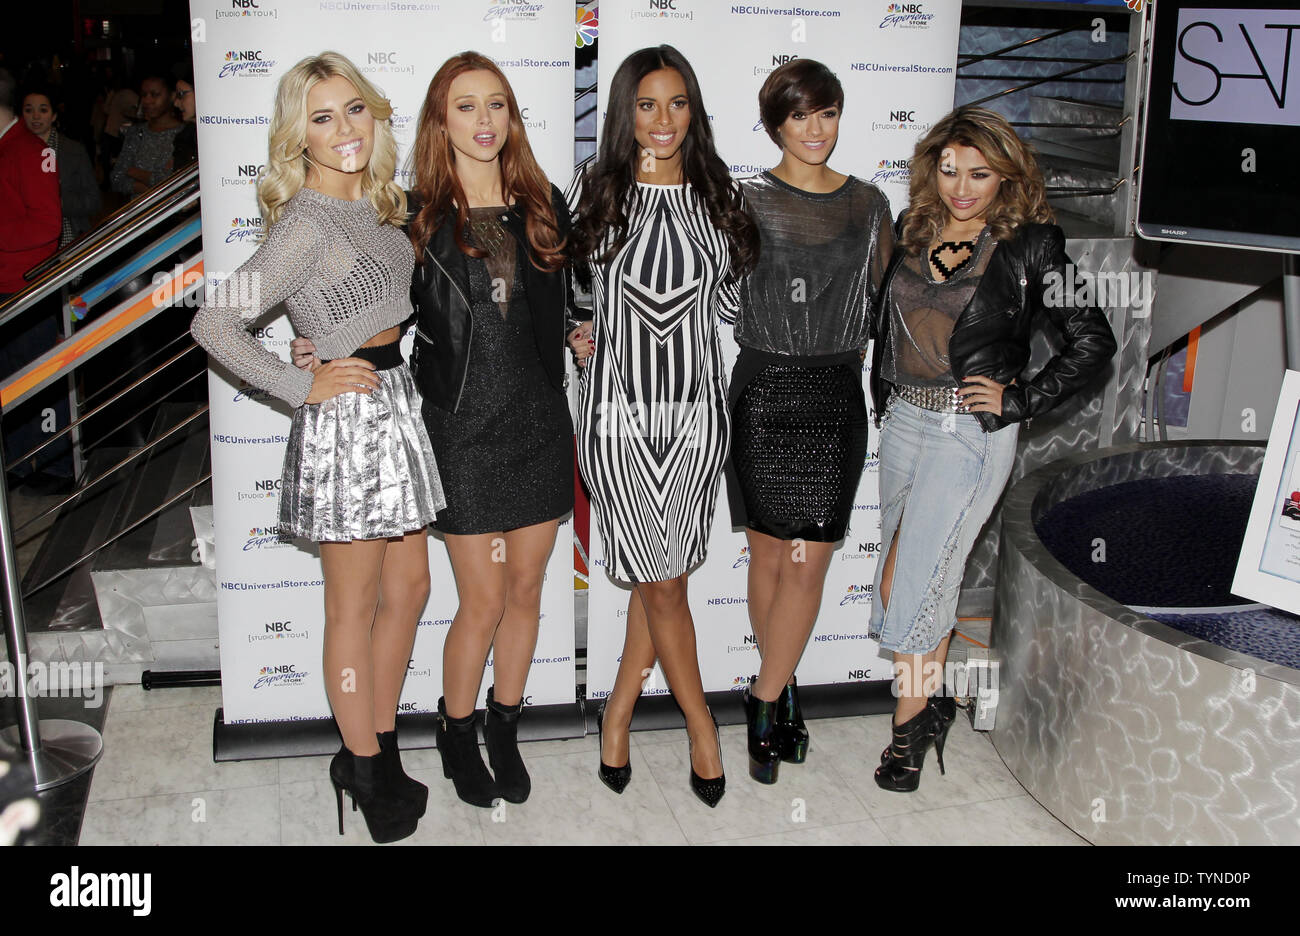 Mollie King, Una Healy, Rochelle Humes, Frankie Sandford and Vanessa White of The Saturdays promote 'Chasing The Saturdays' at the NBC Experience Store in New York City on January 17, 2013.       UPI/John Angelillo - Stock Image